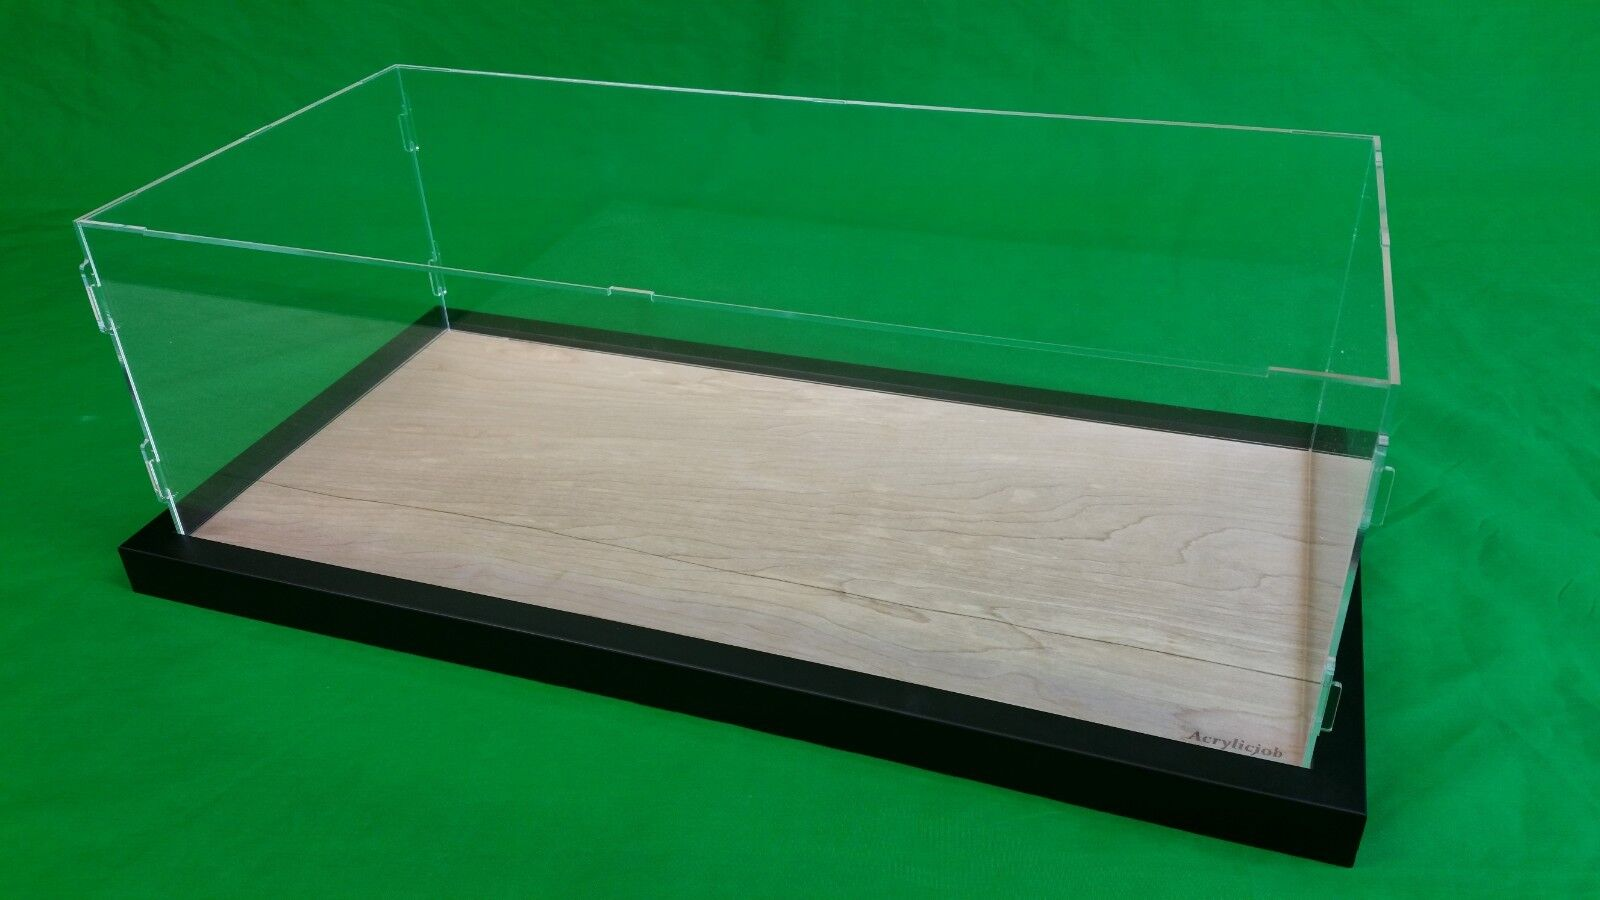 19 x 6 x 8 Table Top Display  Case Ocean Liner Cruise Ships LGB and G scale Train  articles de nouveauté